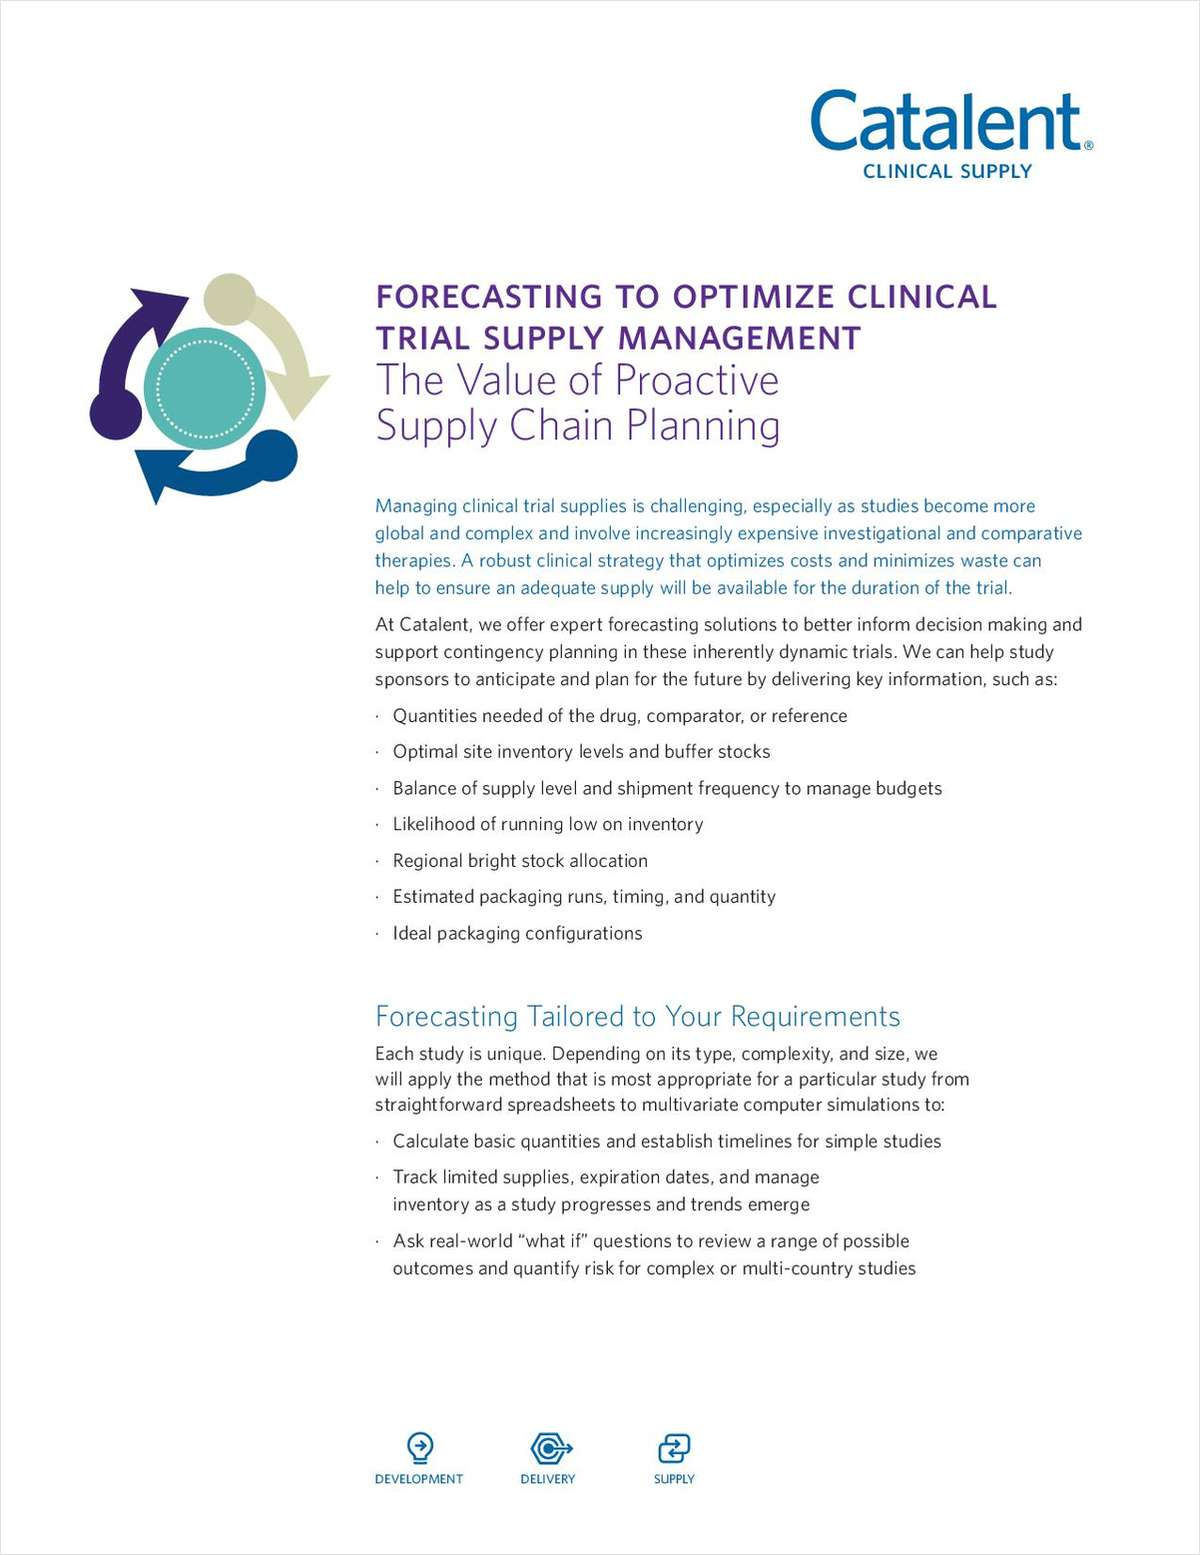 Forecasting to Optimize Clinical Trial Supply Management